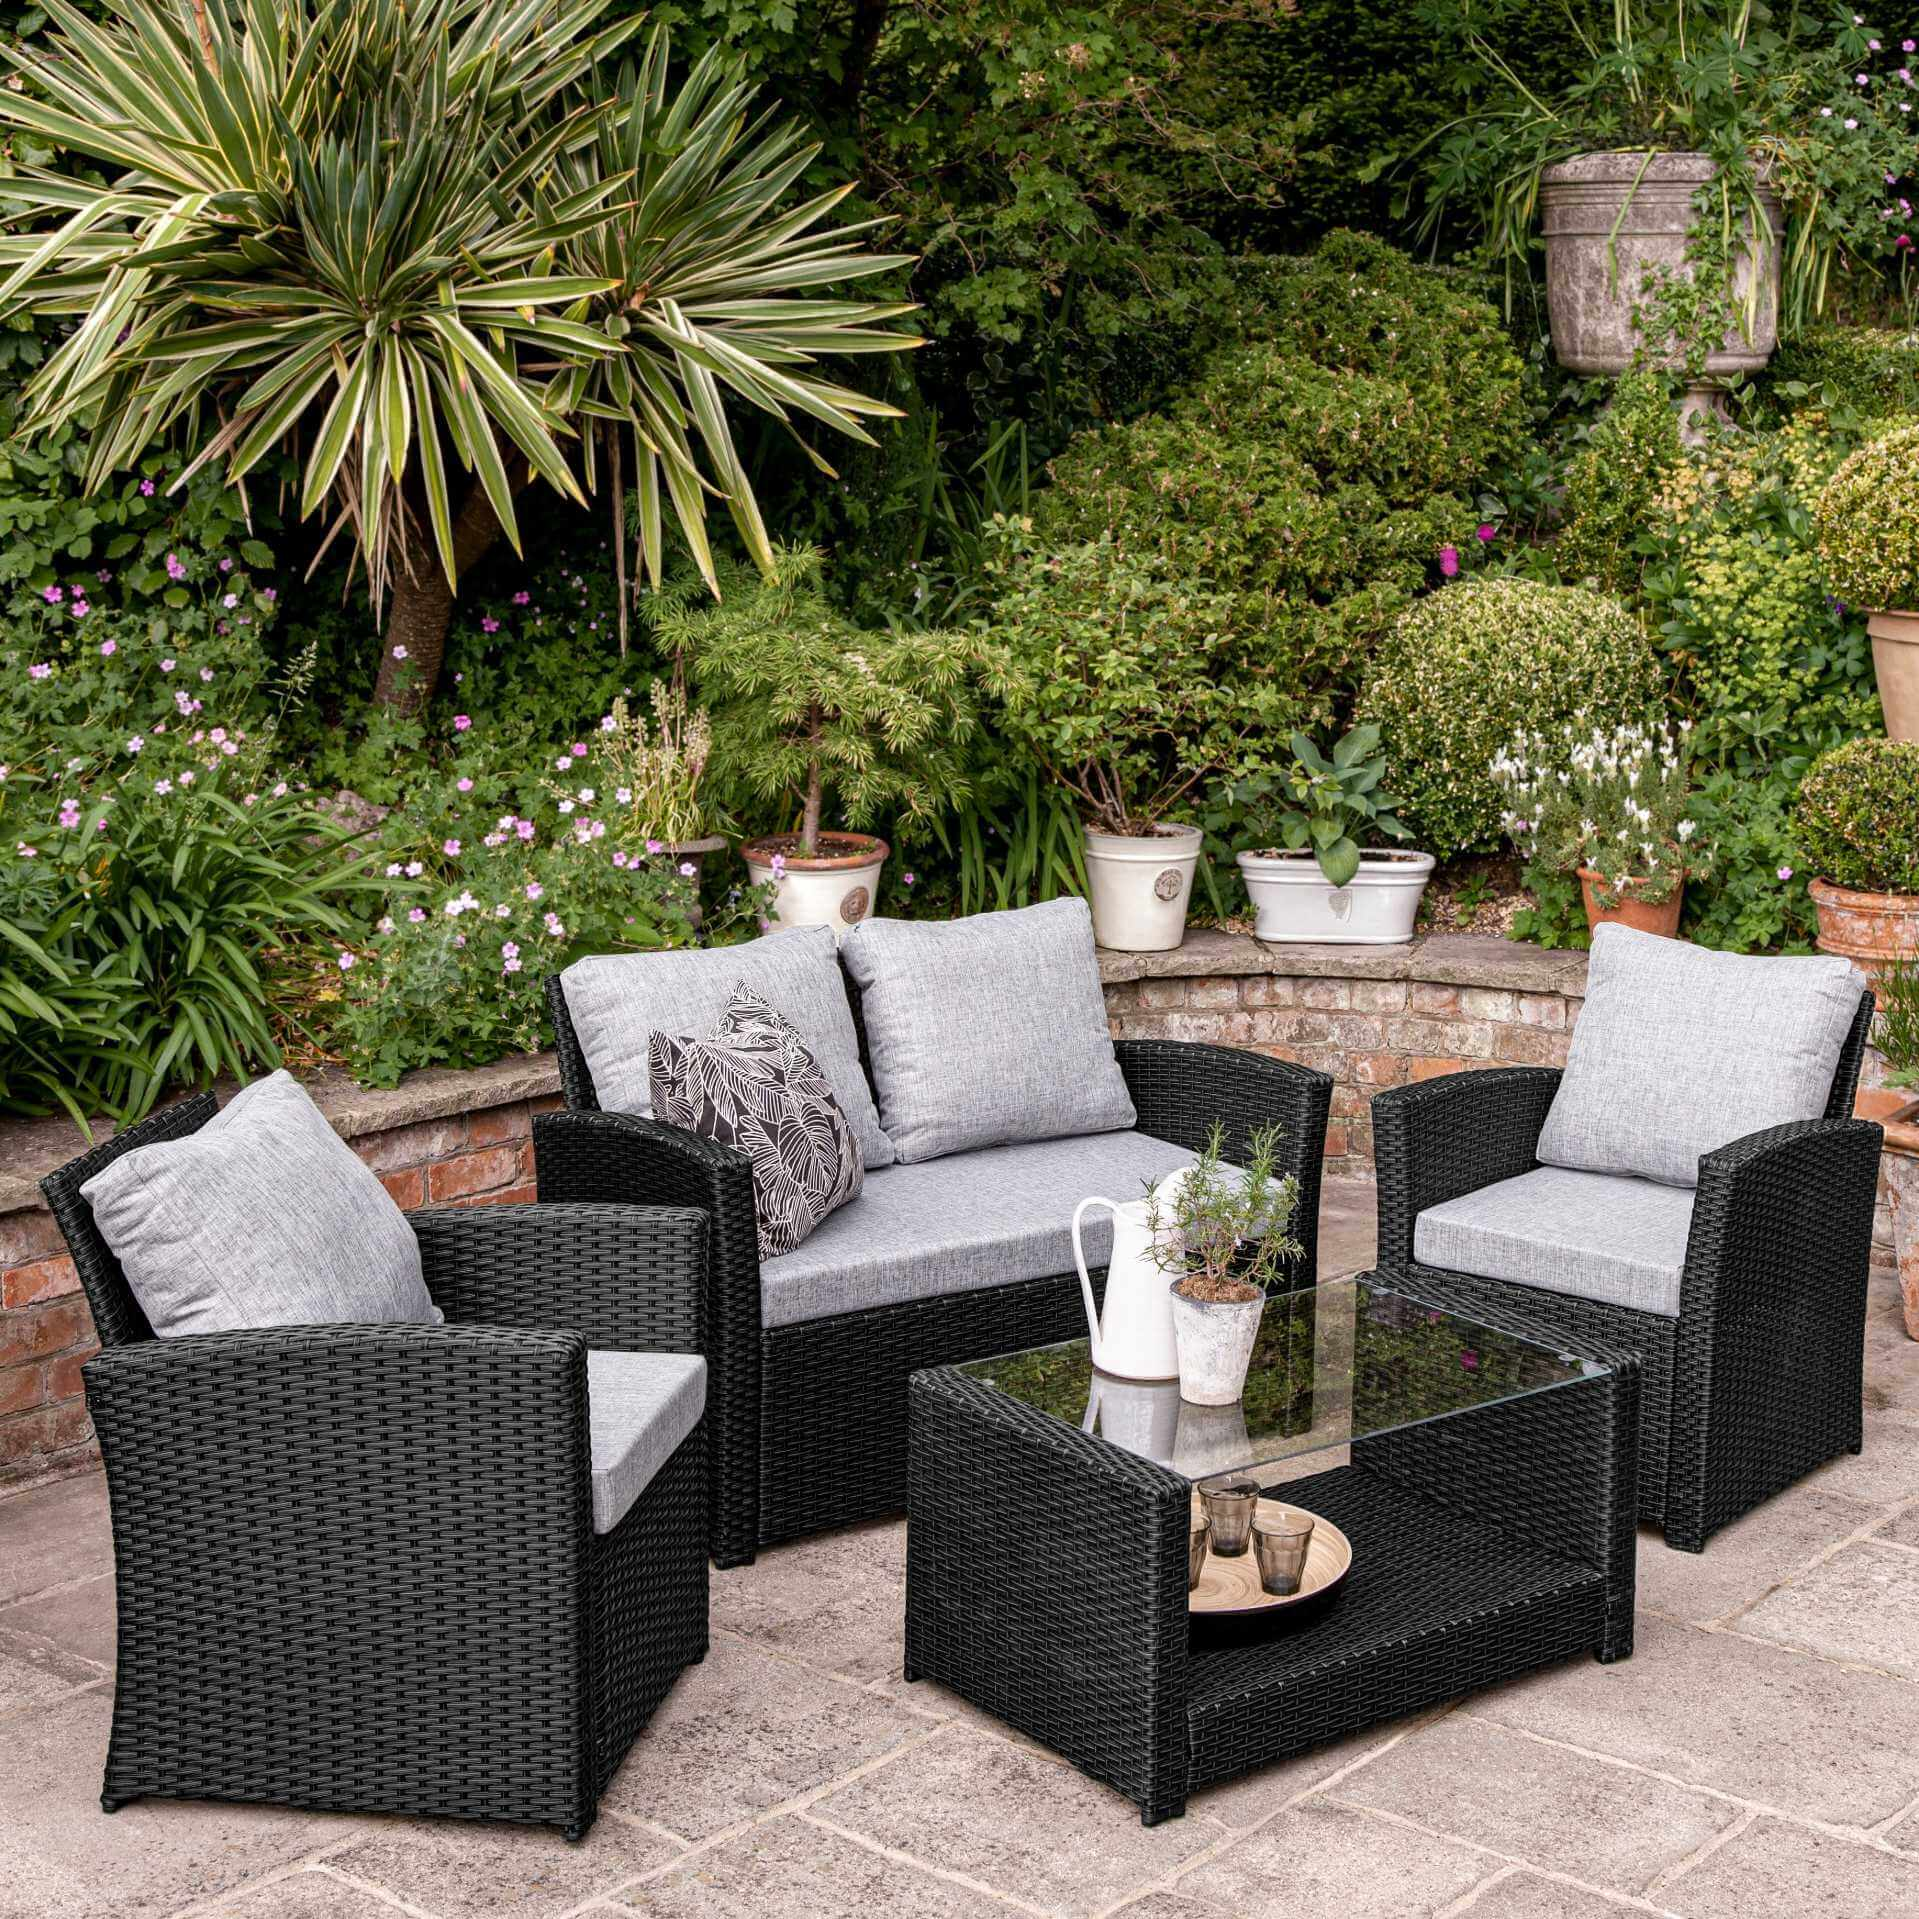 Rattan Garden Sofa Set - 4 Seater - Black Weave